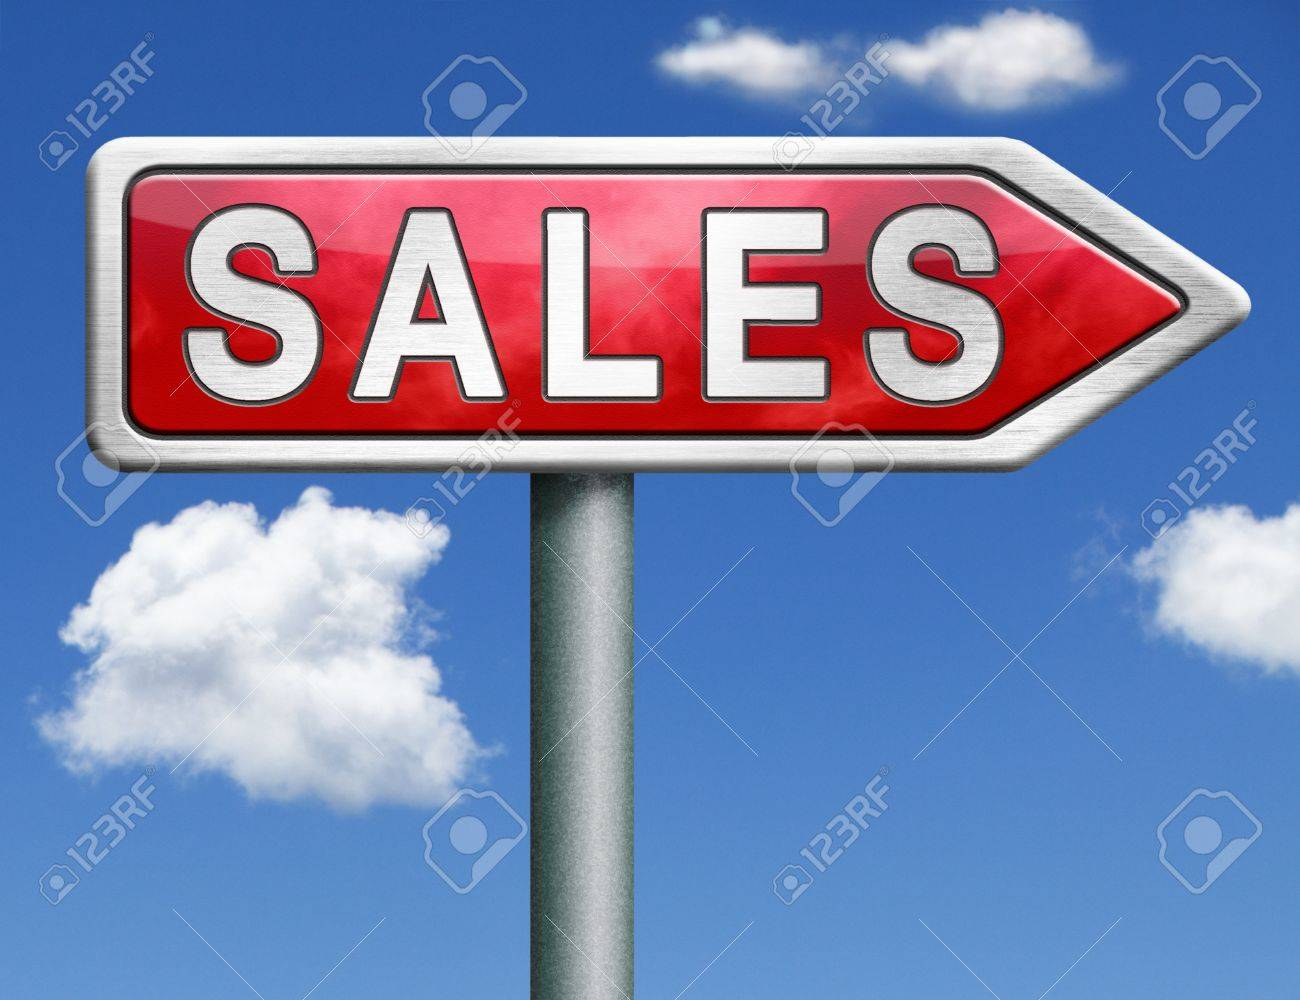 sales online shopping concept with discount web shop bargain cheap order at webshop sale icon Stock Photo - 20125354